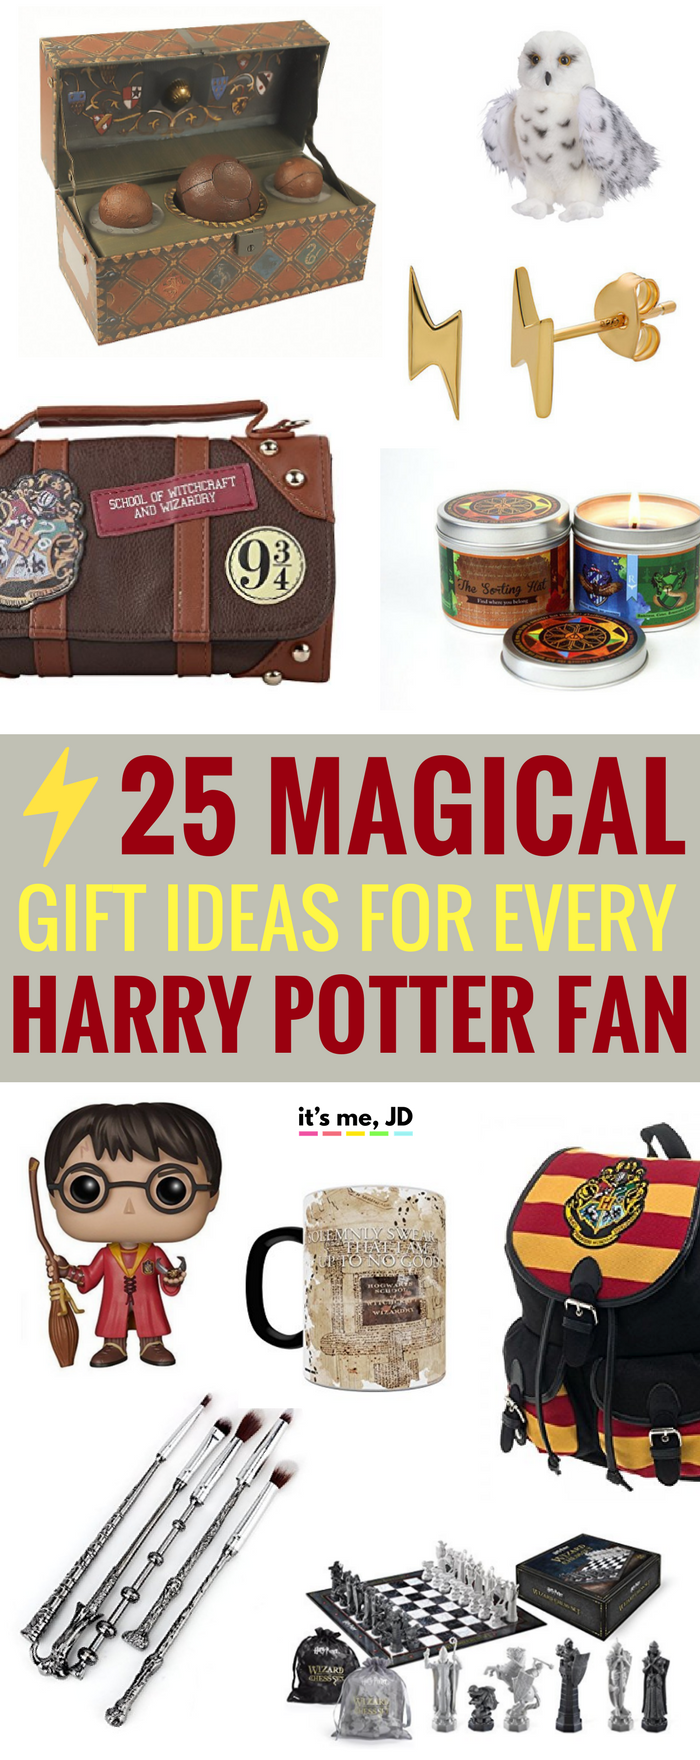 #harrypotter Magical Gift Ideas for Harry Potter Fans